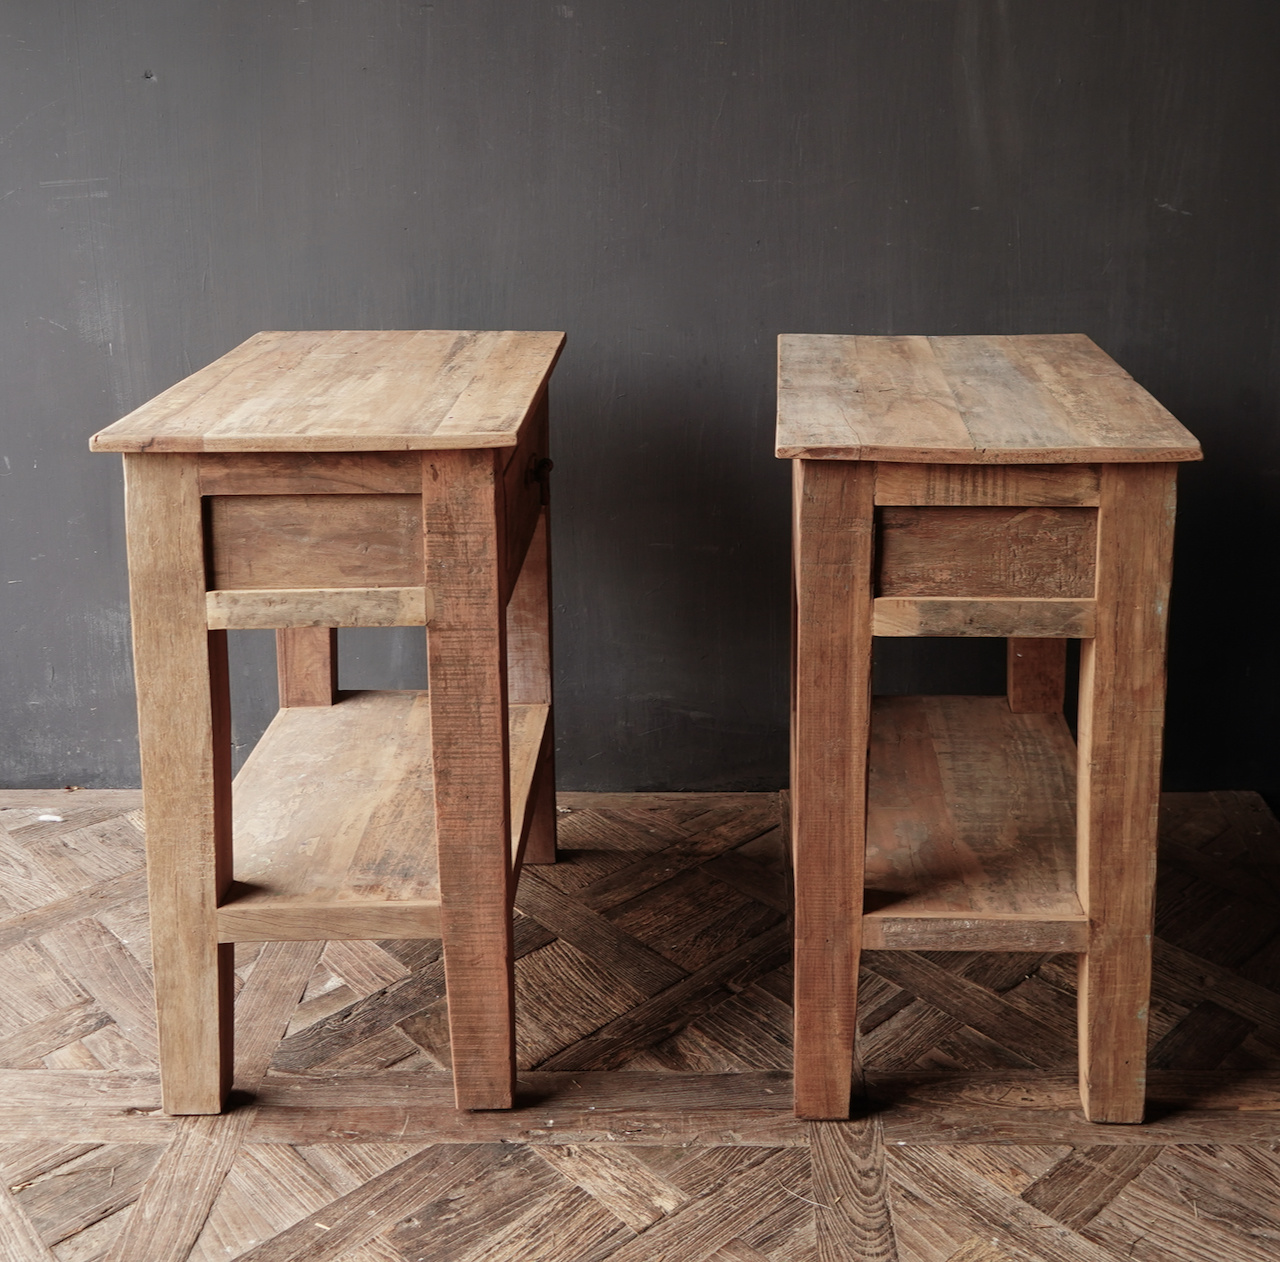 Stoer Robust old wooden side table or wall table with a drawer-3